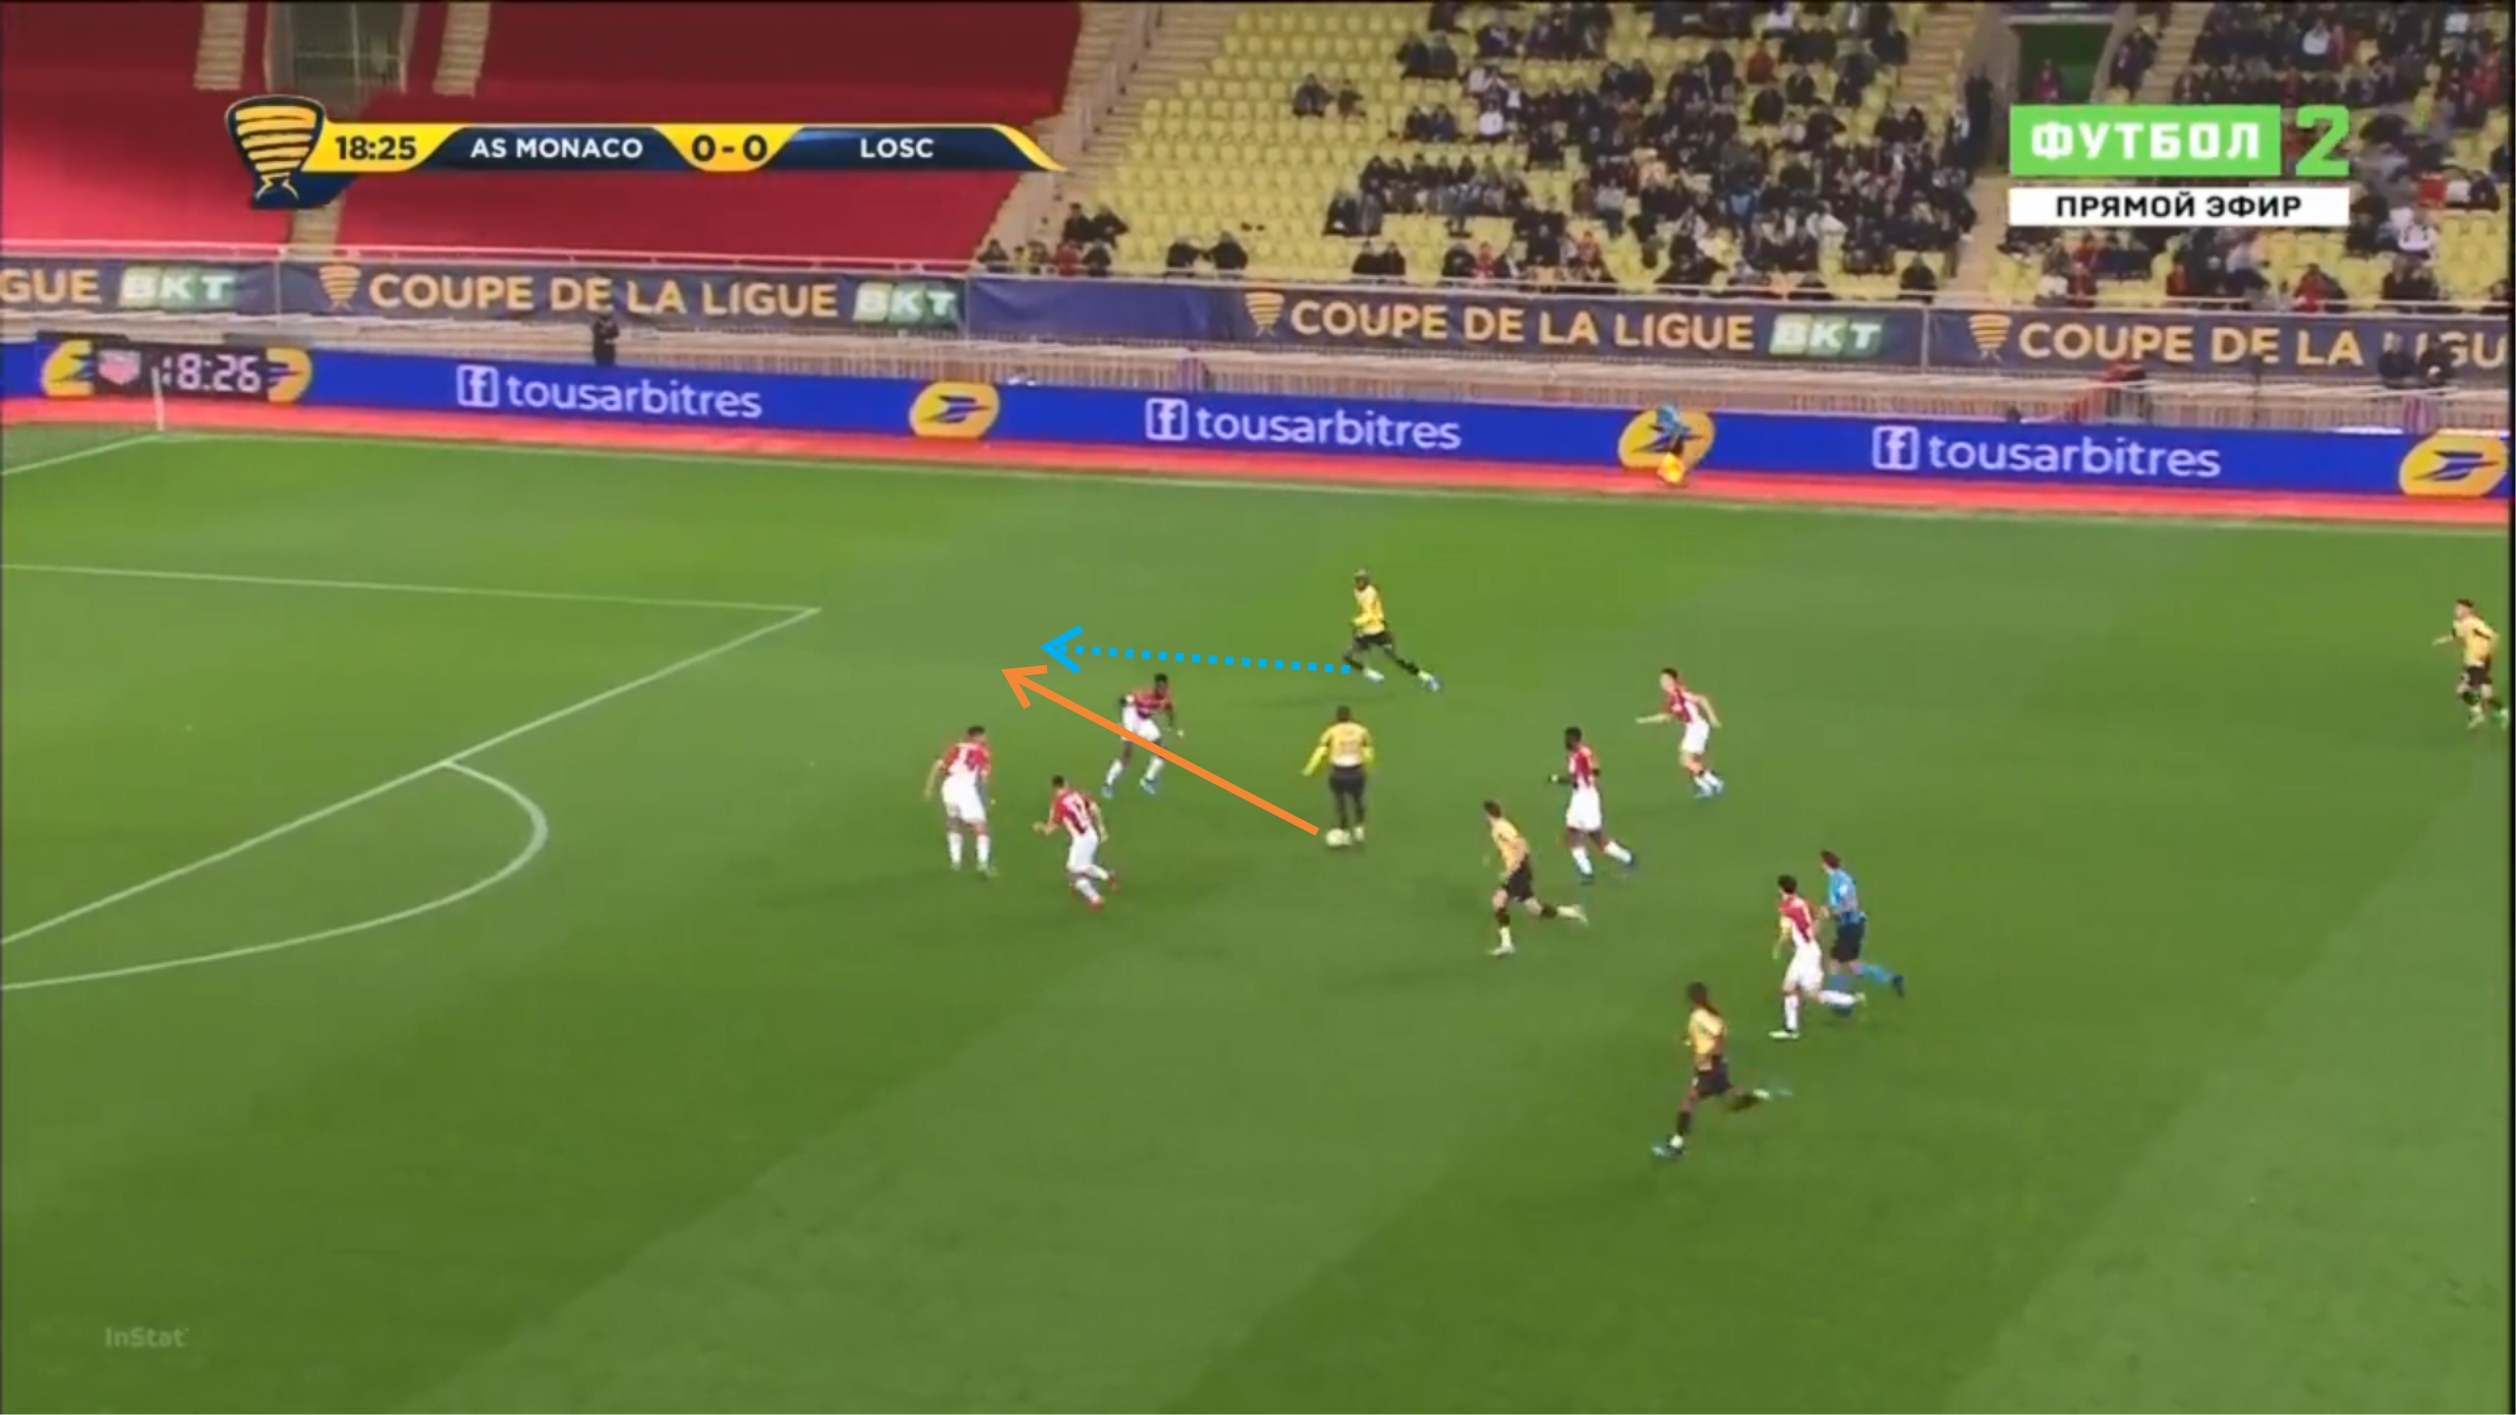 Coupe de la Ligue 2019/20: Monaco vs Lille - tactical analysis tactics